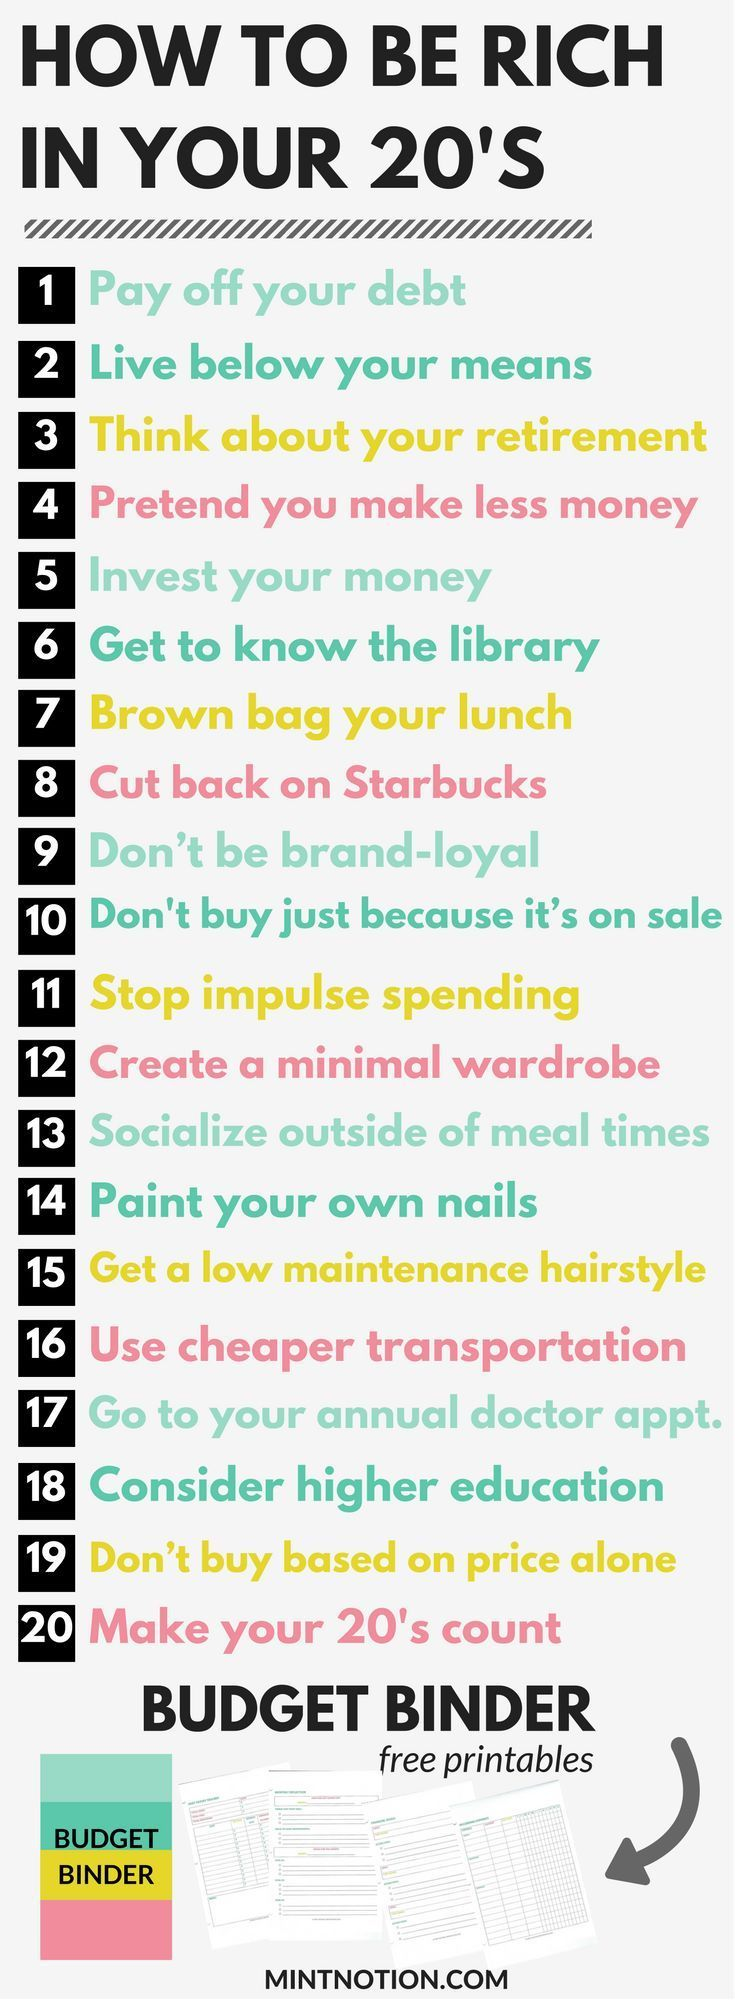 How to be rich in you 20s. Build wealth and save money this year.